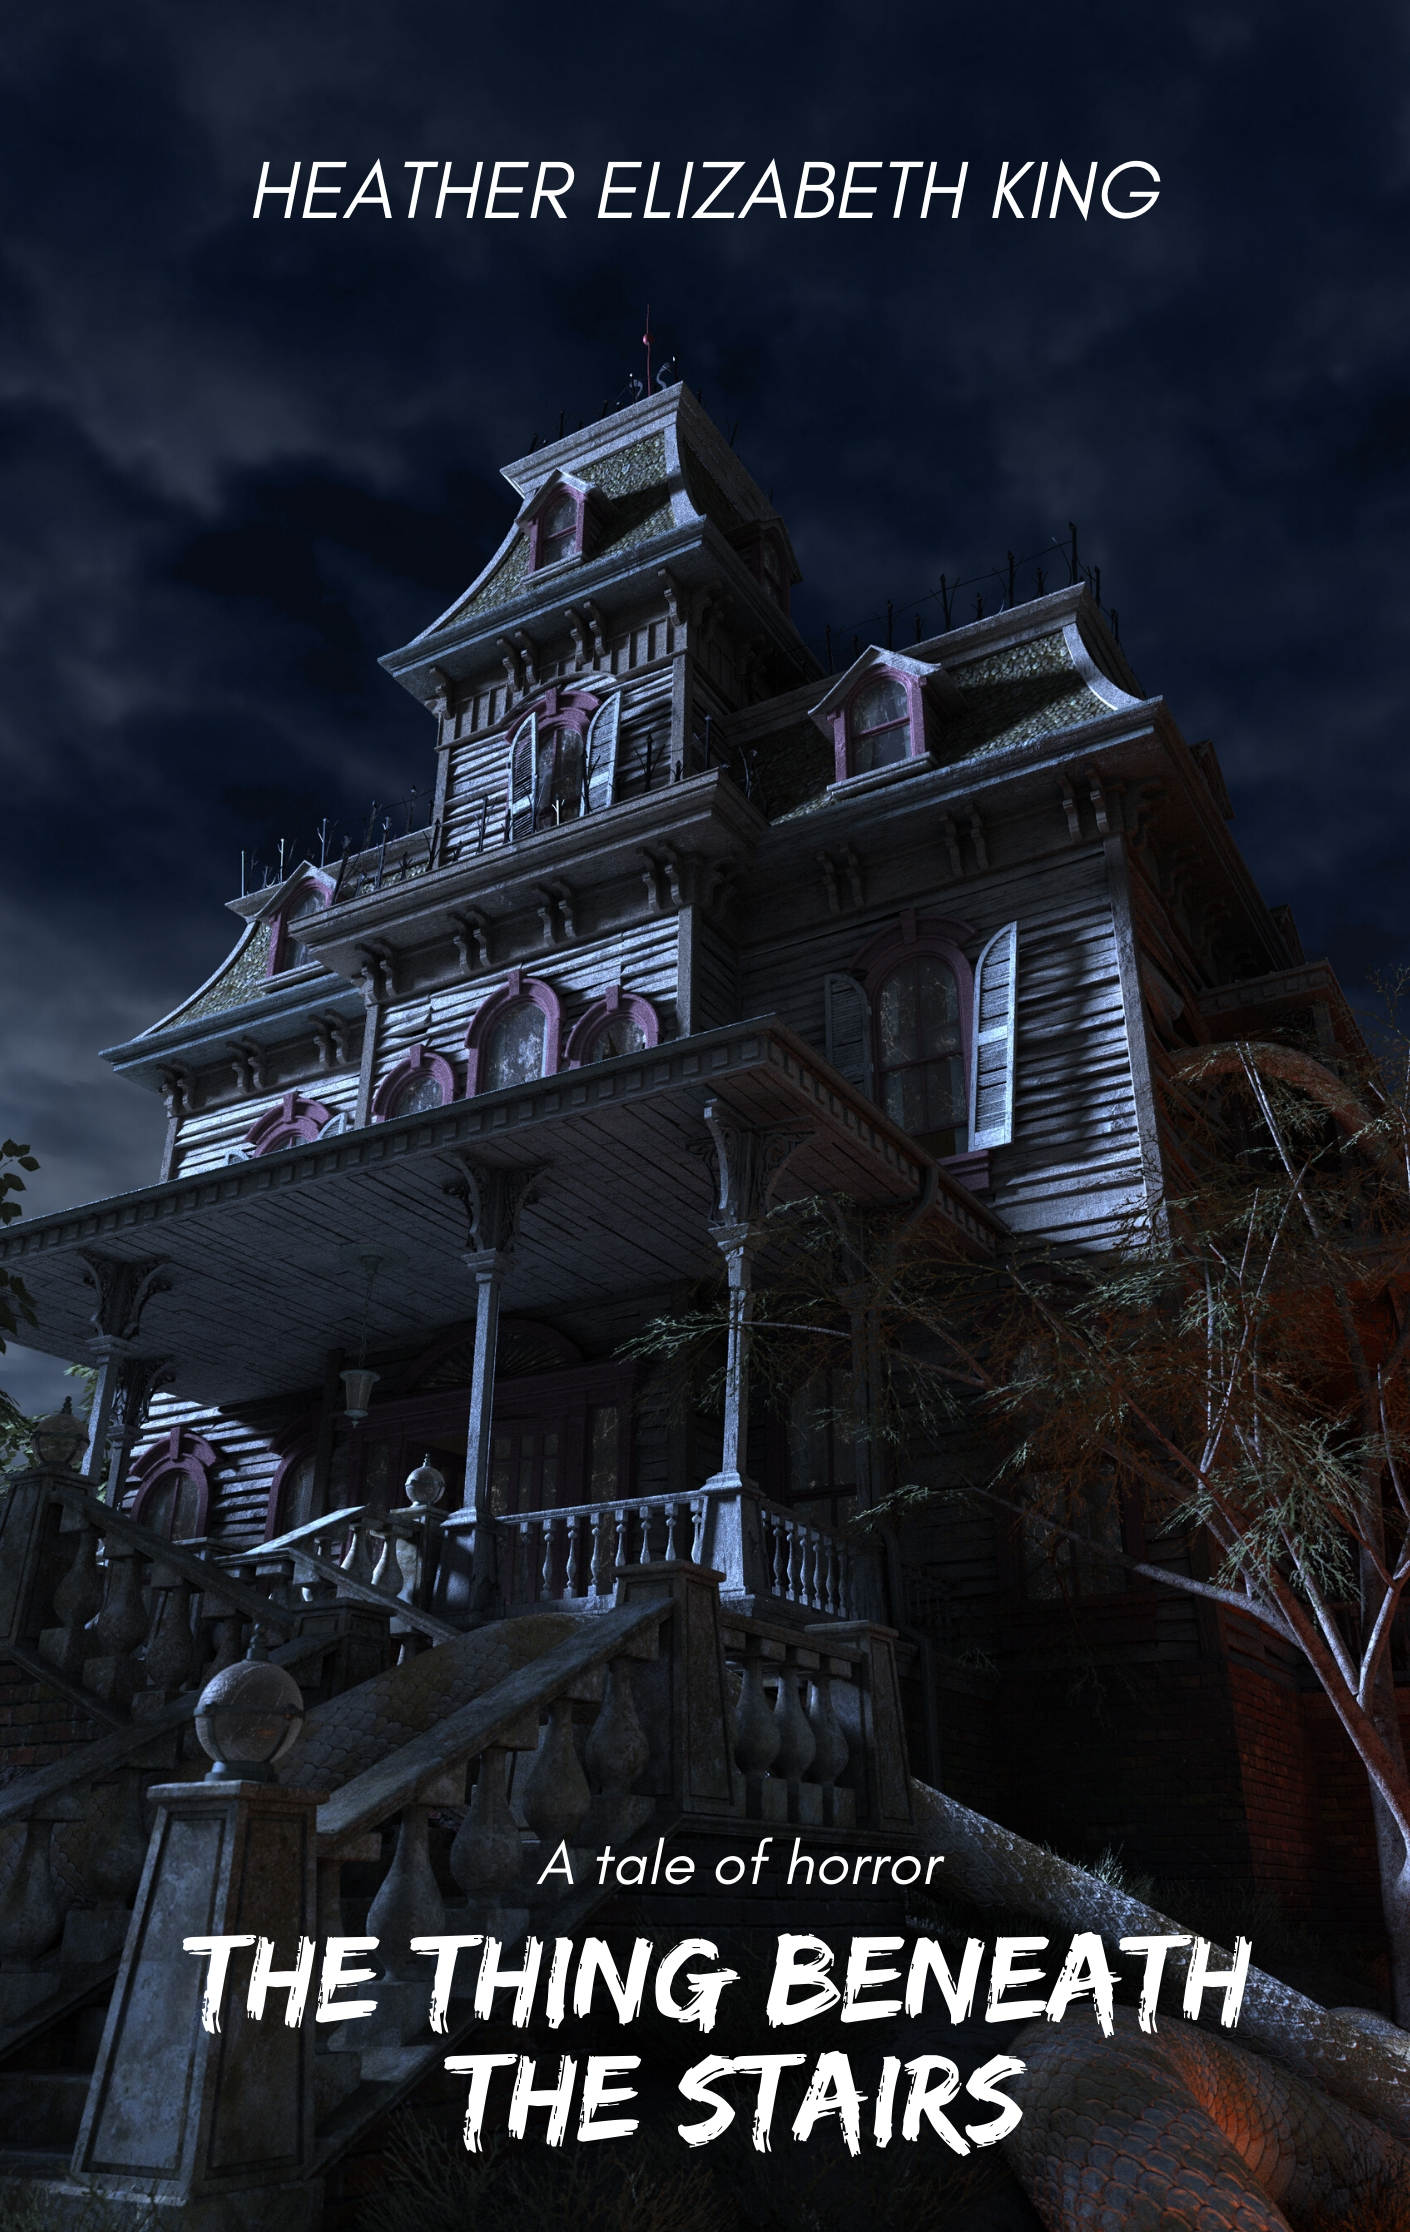 The Thing Beneath the Stairs - version 2.1